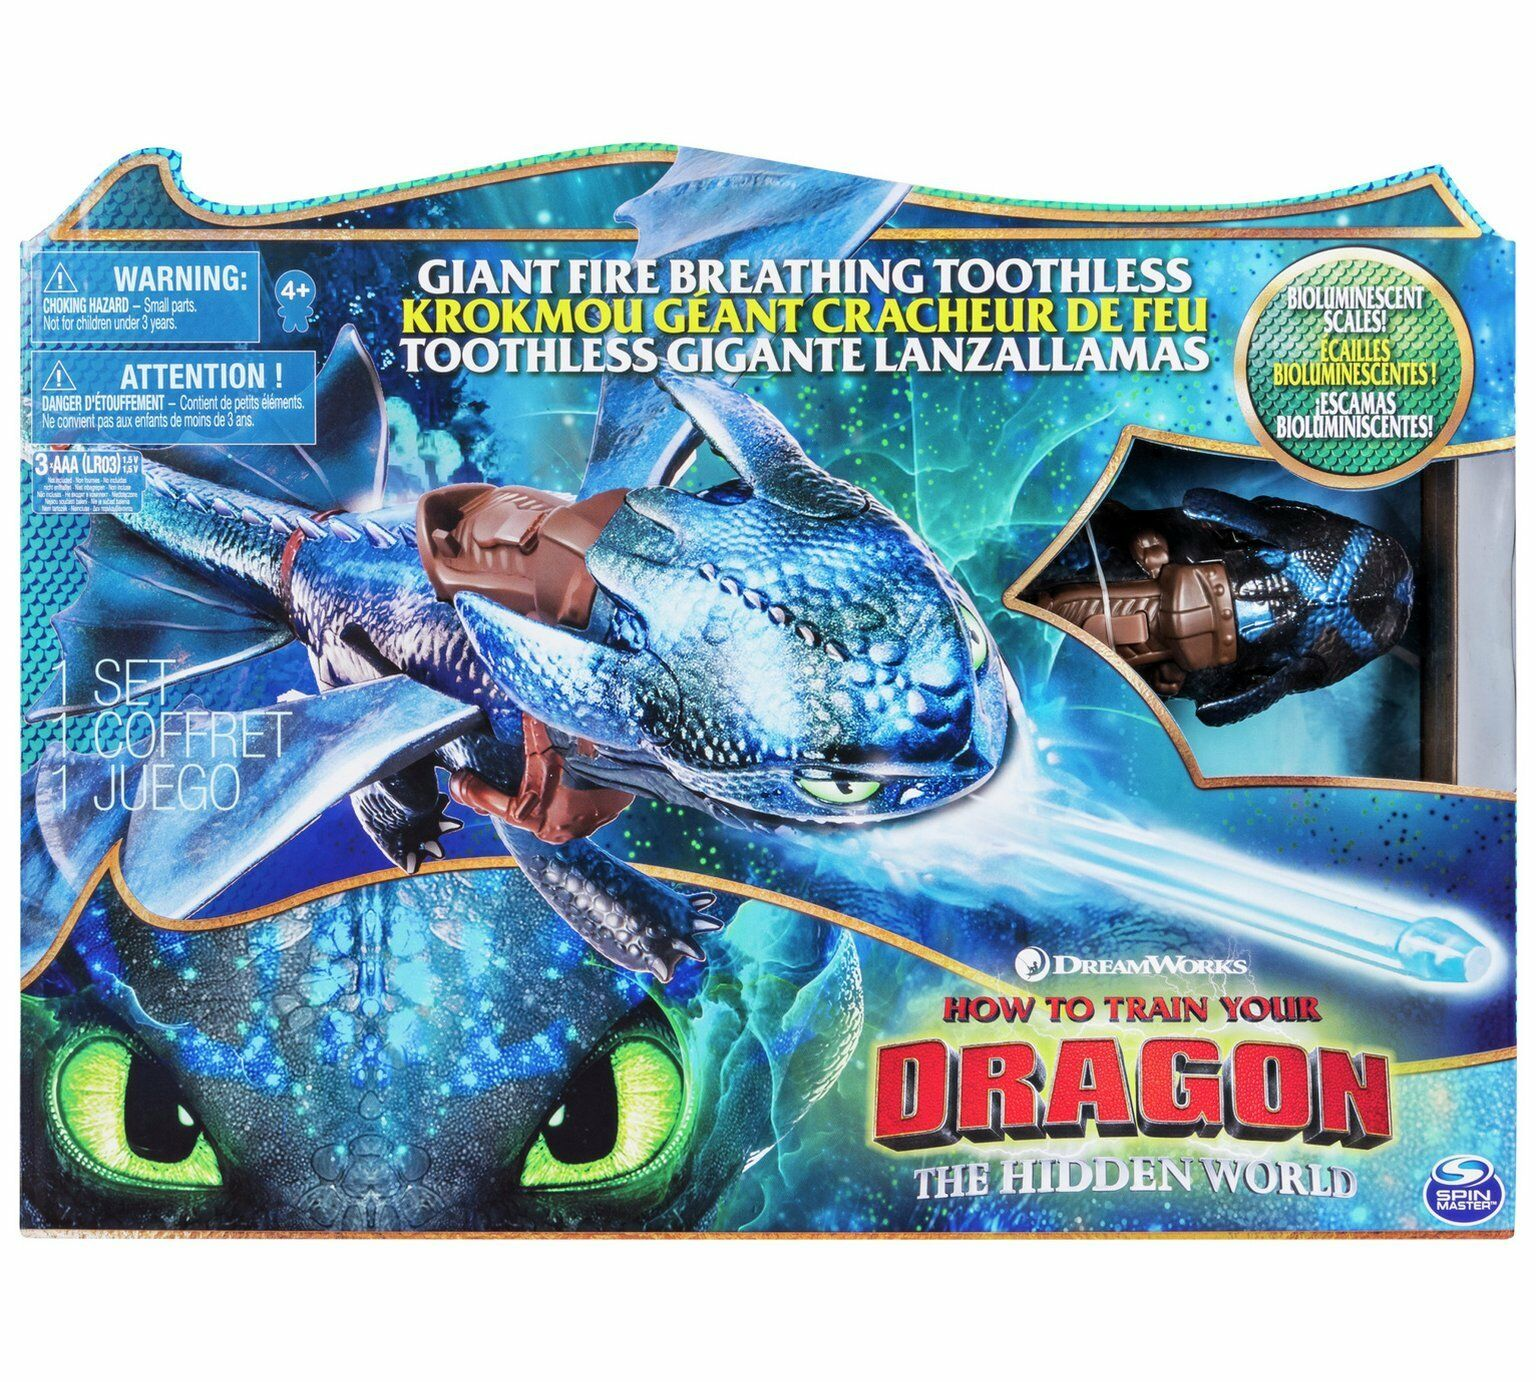 How To Train Your Dragon The Hidden World World World - Giant Fire Breathing Toothless c1e446